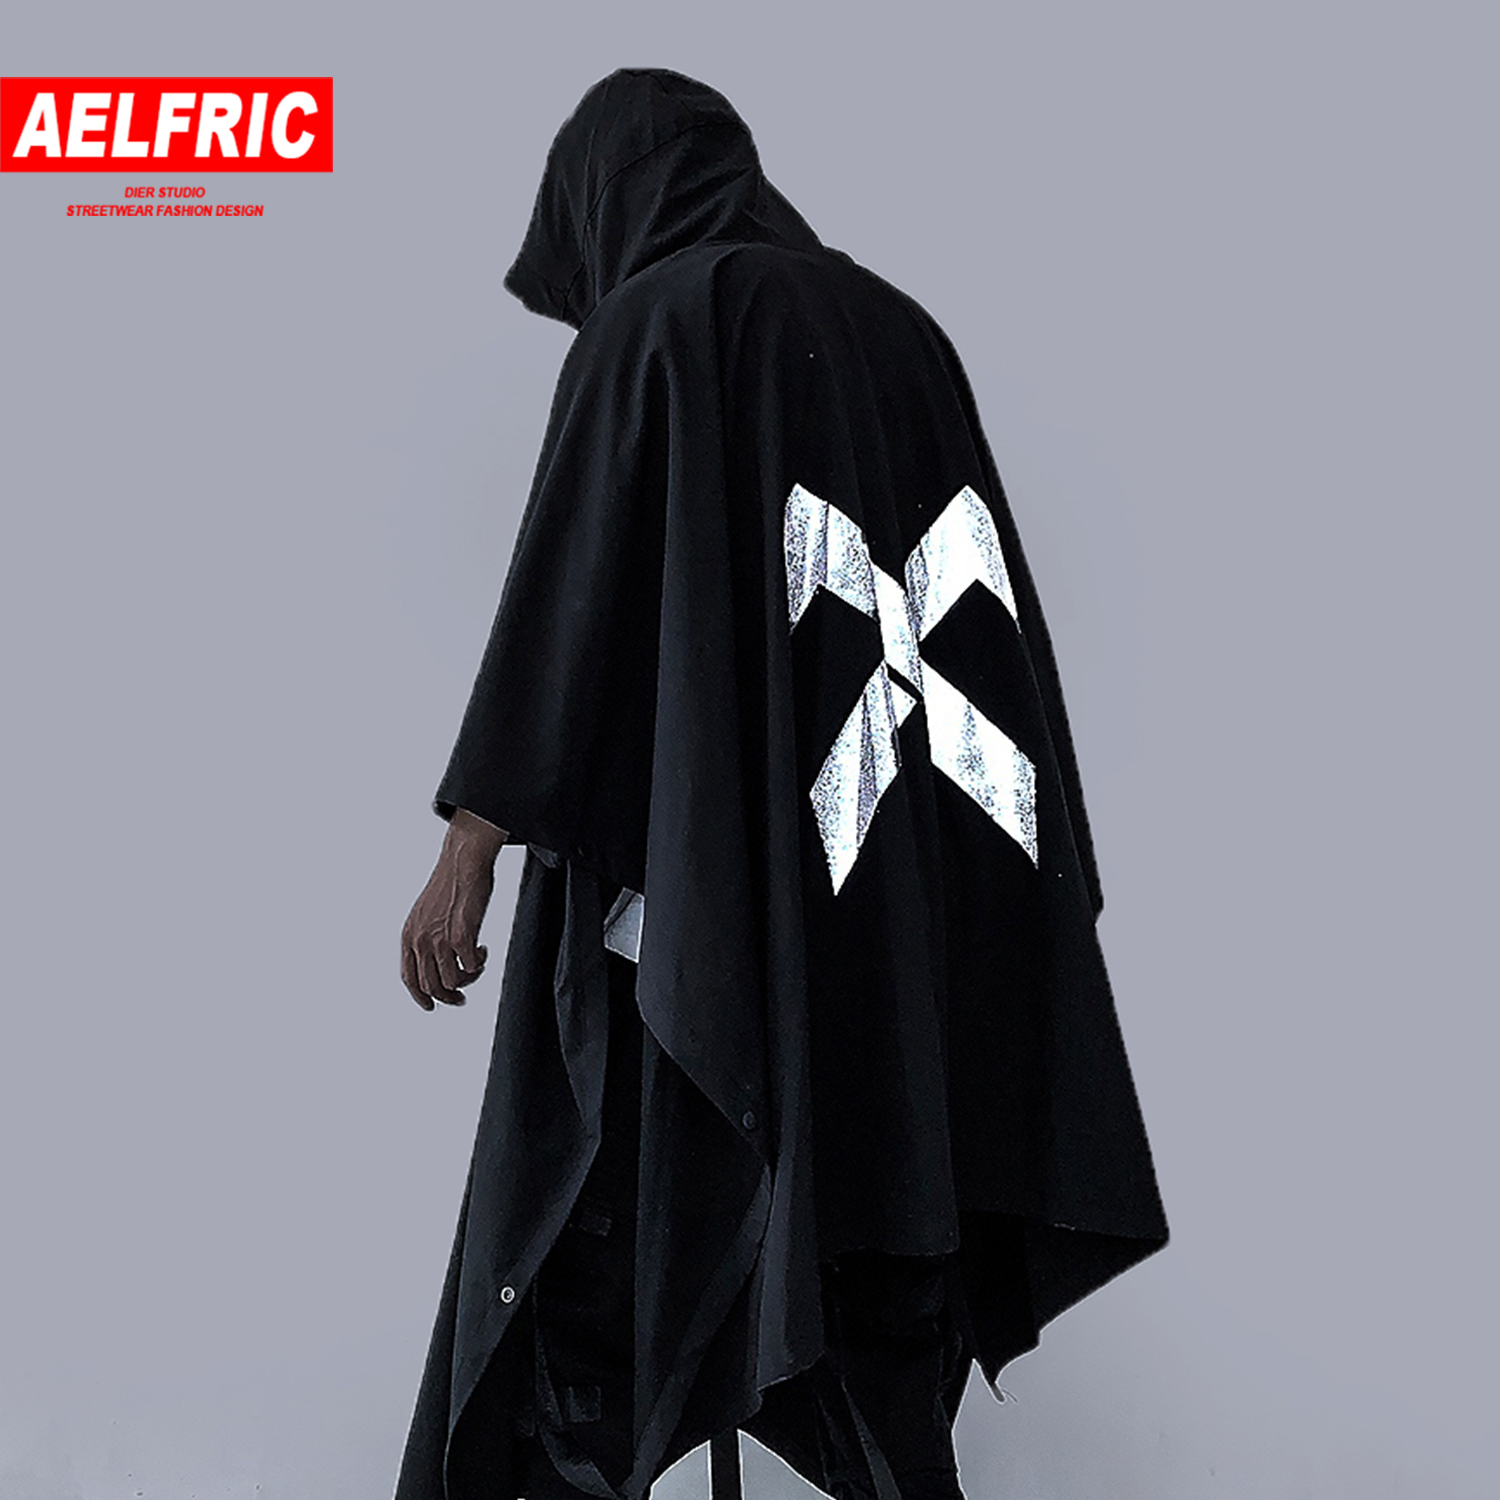 AELFRIC Hip Hop Letter Printed Mens Irregular Trench Jackets Autumn Fashion Casual Streetwear Harajuku Pockets Turtleneck Coats